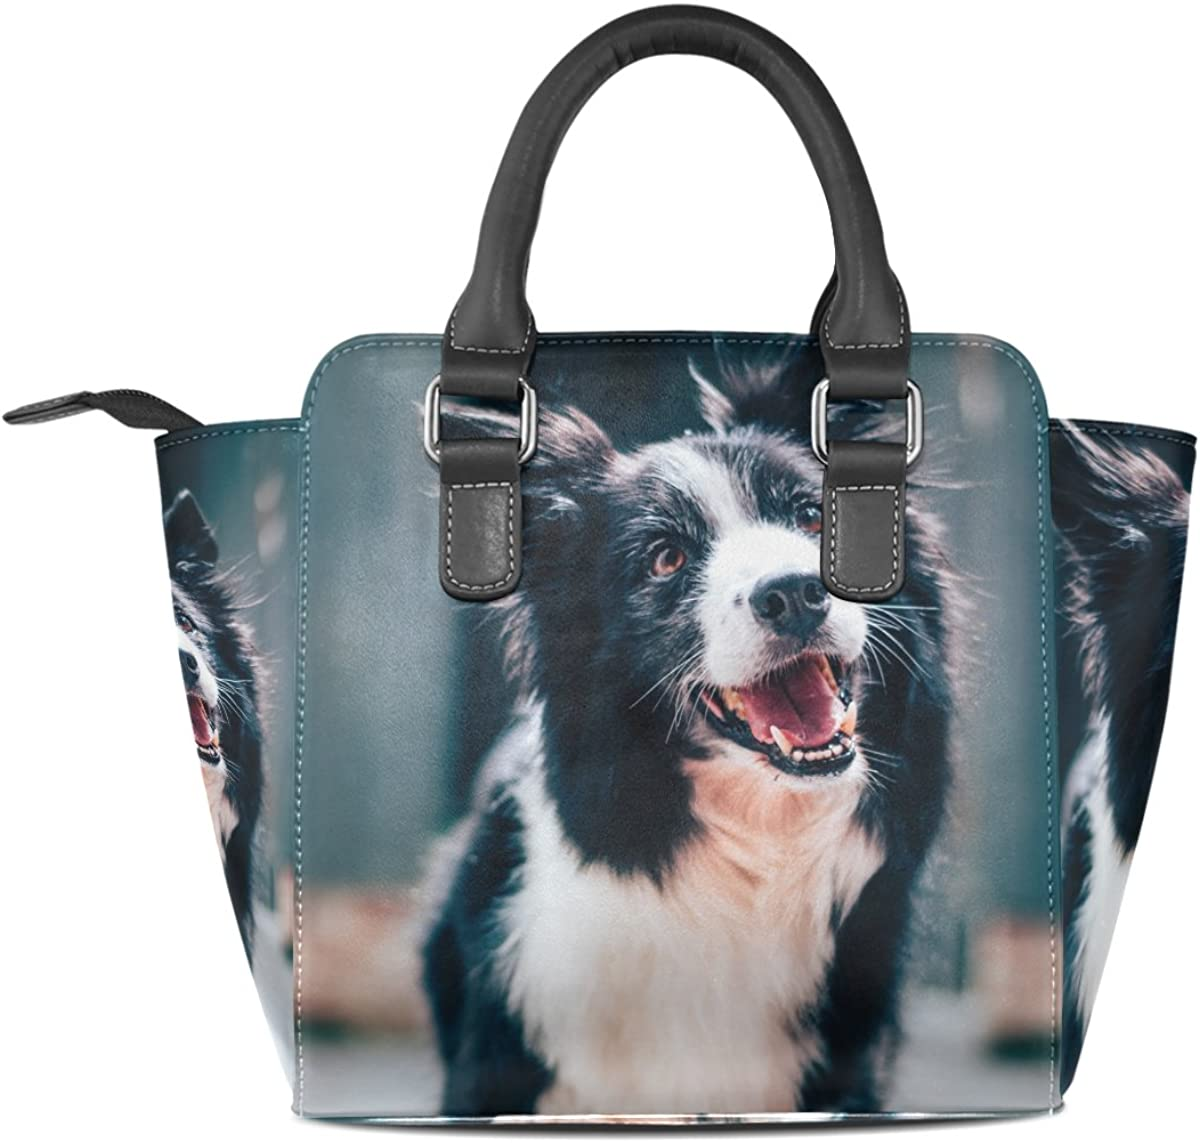 LIANCHENYI Cute Border Collie PU Leather Top Handle Handbags